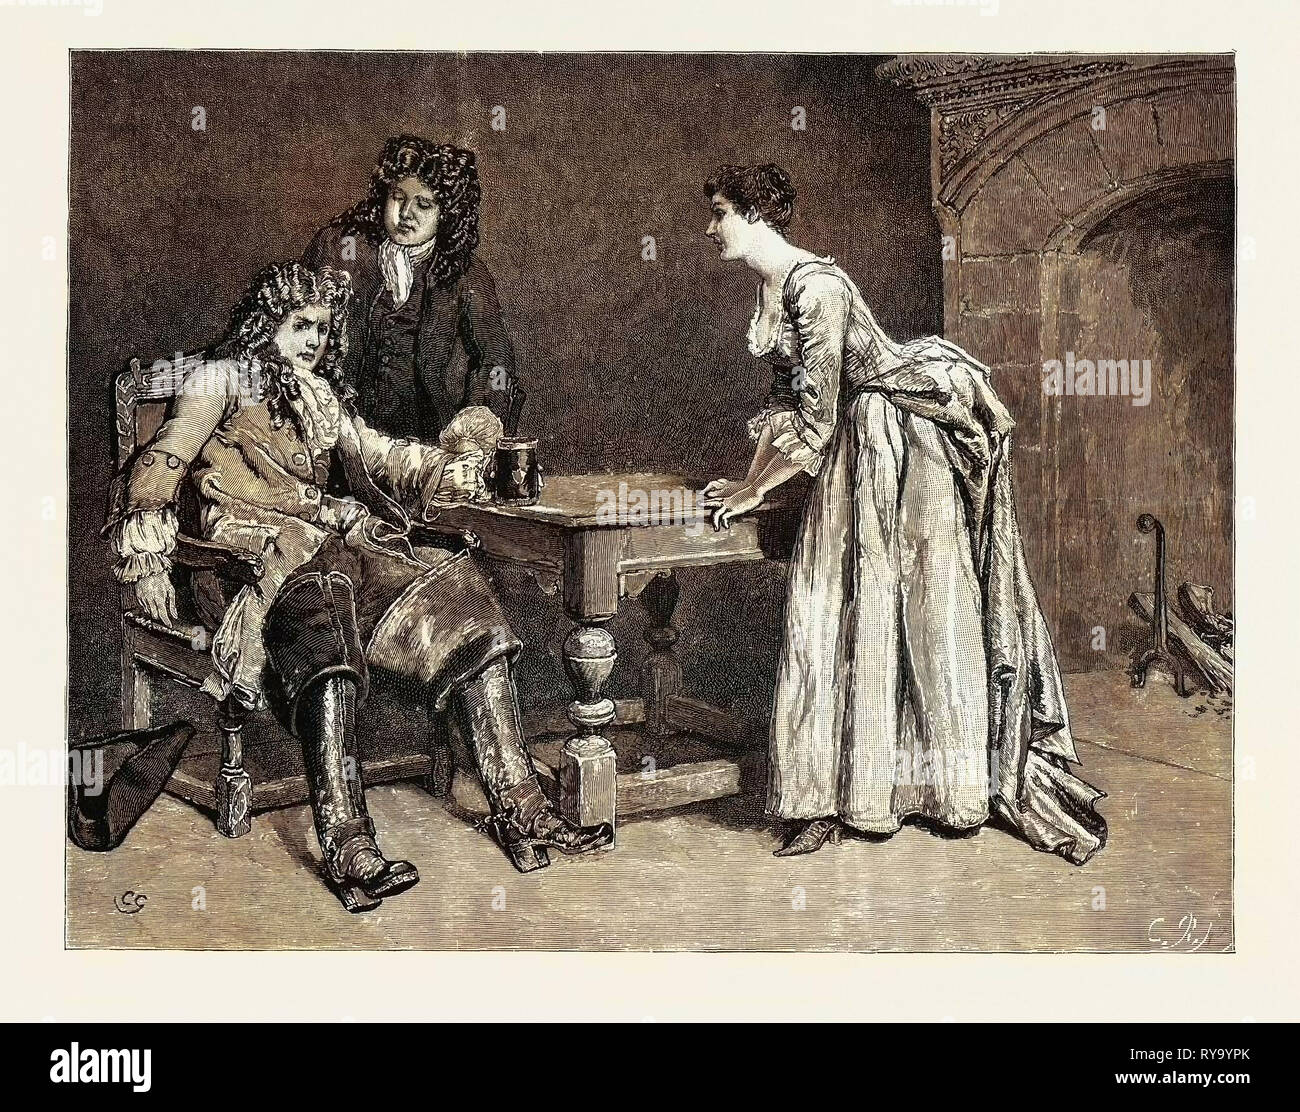 Dorothy Forster: He Drained About a Quart of Ale and Then Set Down the Mug with a Sigh - Stock Image